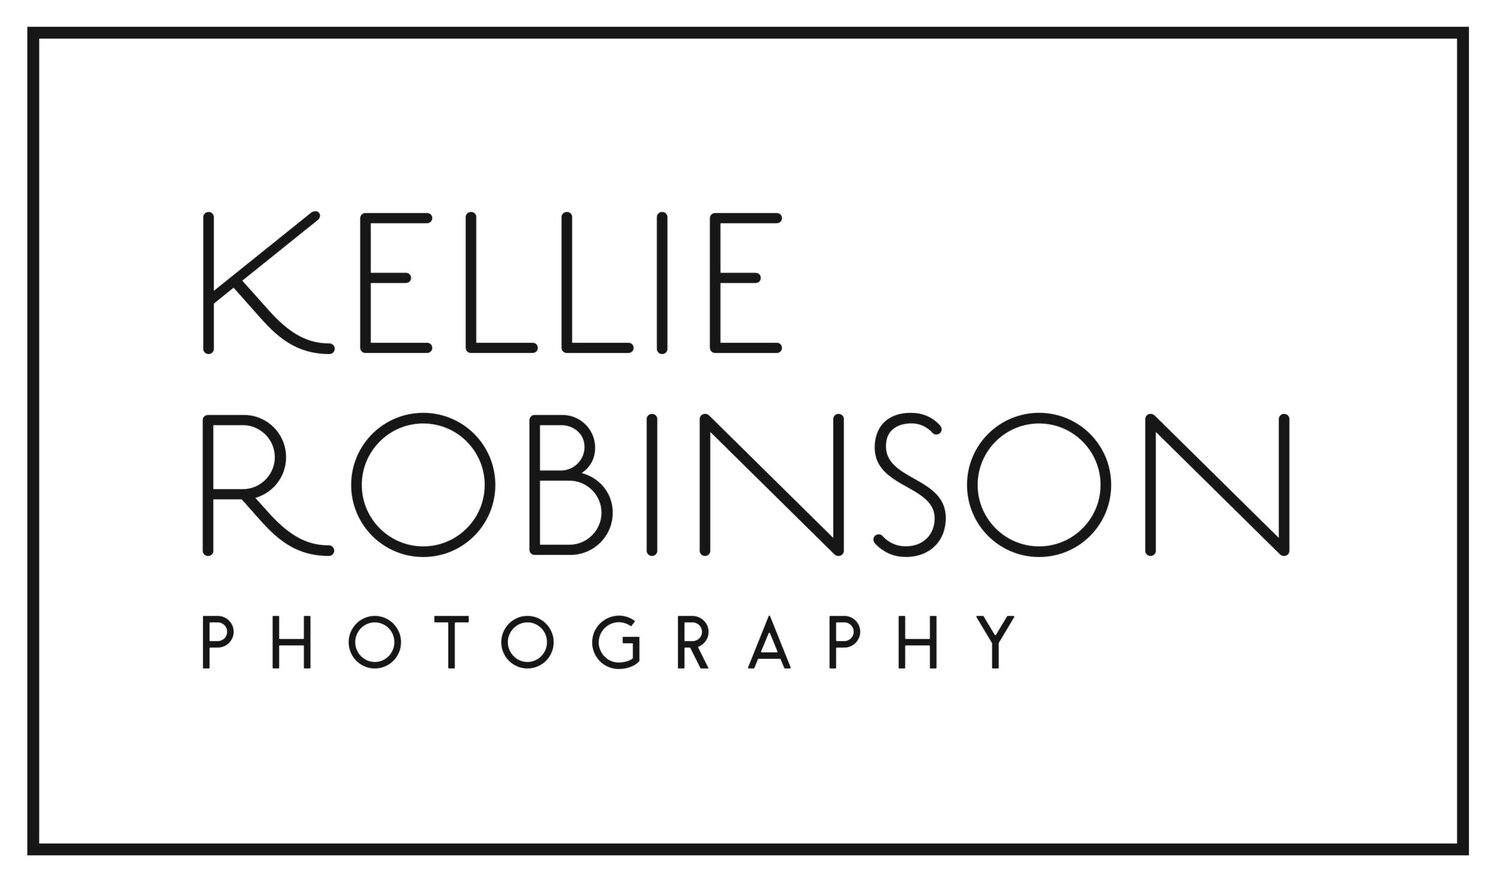 Kellie Robinson Photography: Michigan Wedding Photographer